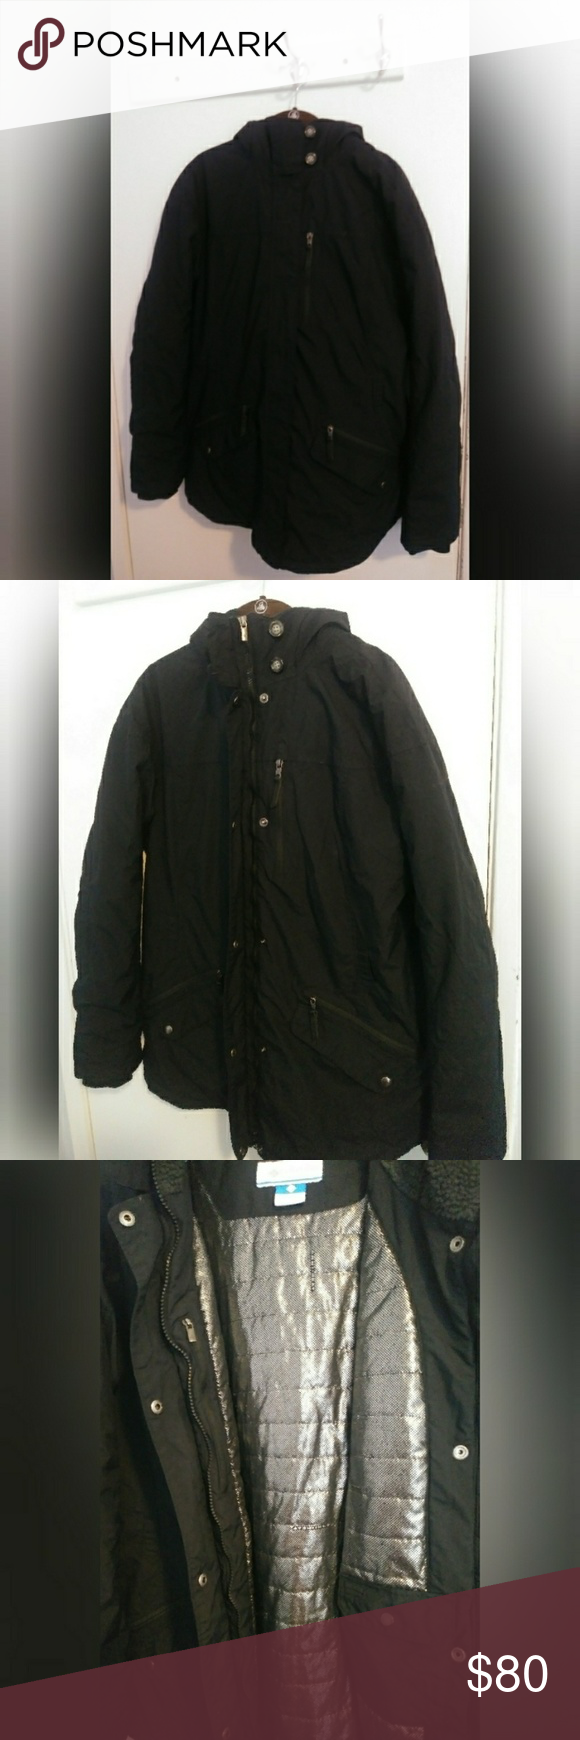 ec8f3eeab4b Columbia Thermal Comfort Omni Shield Jacket Like new condition. 5 pockets  on the front and